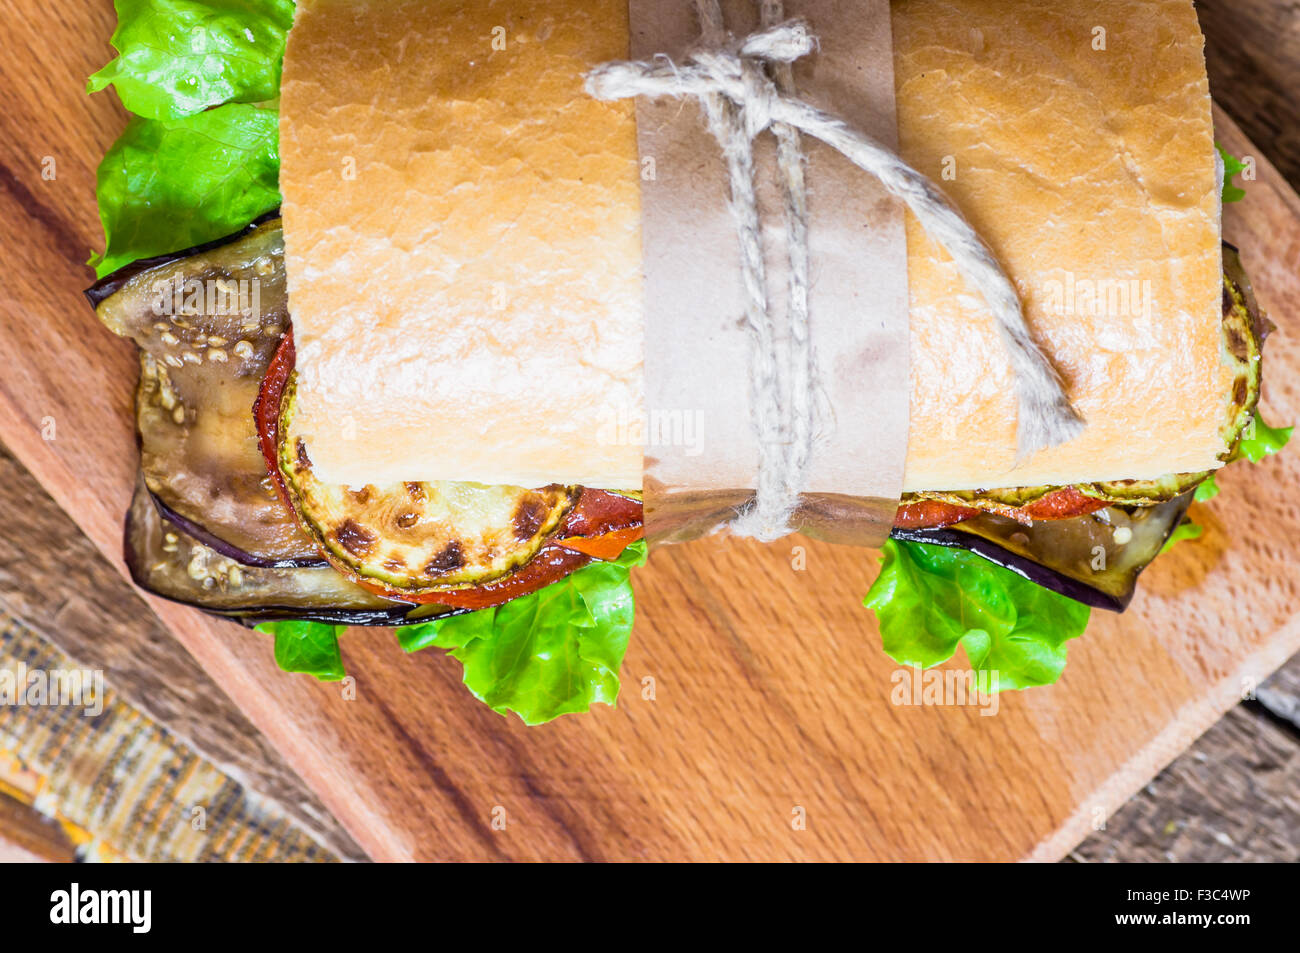 Vegetable vegetarian sandwich with lettuce, zucchini, eggplant and tomato - Stock Image